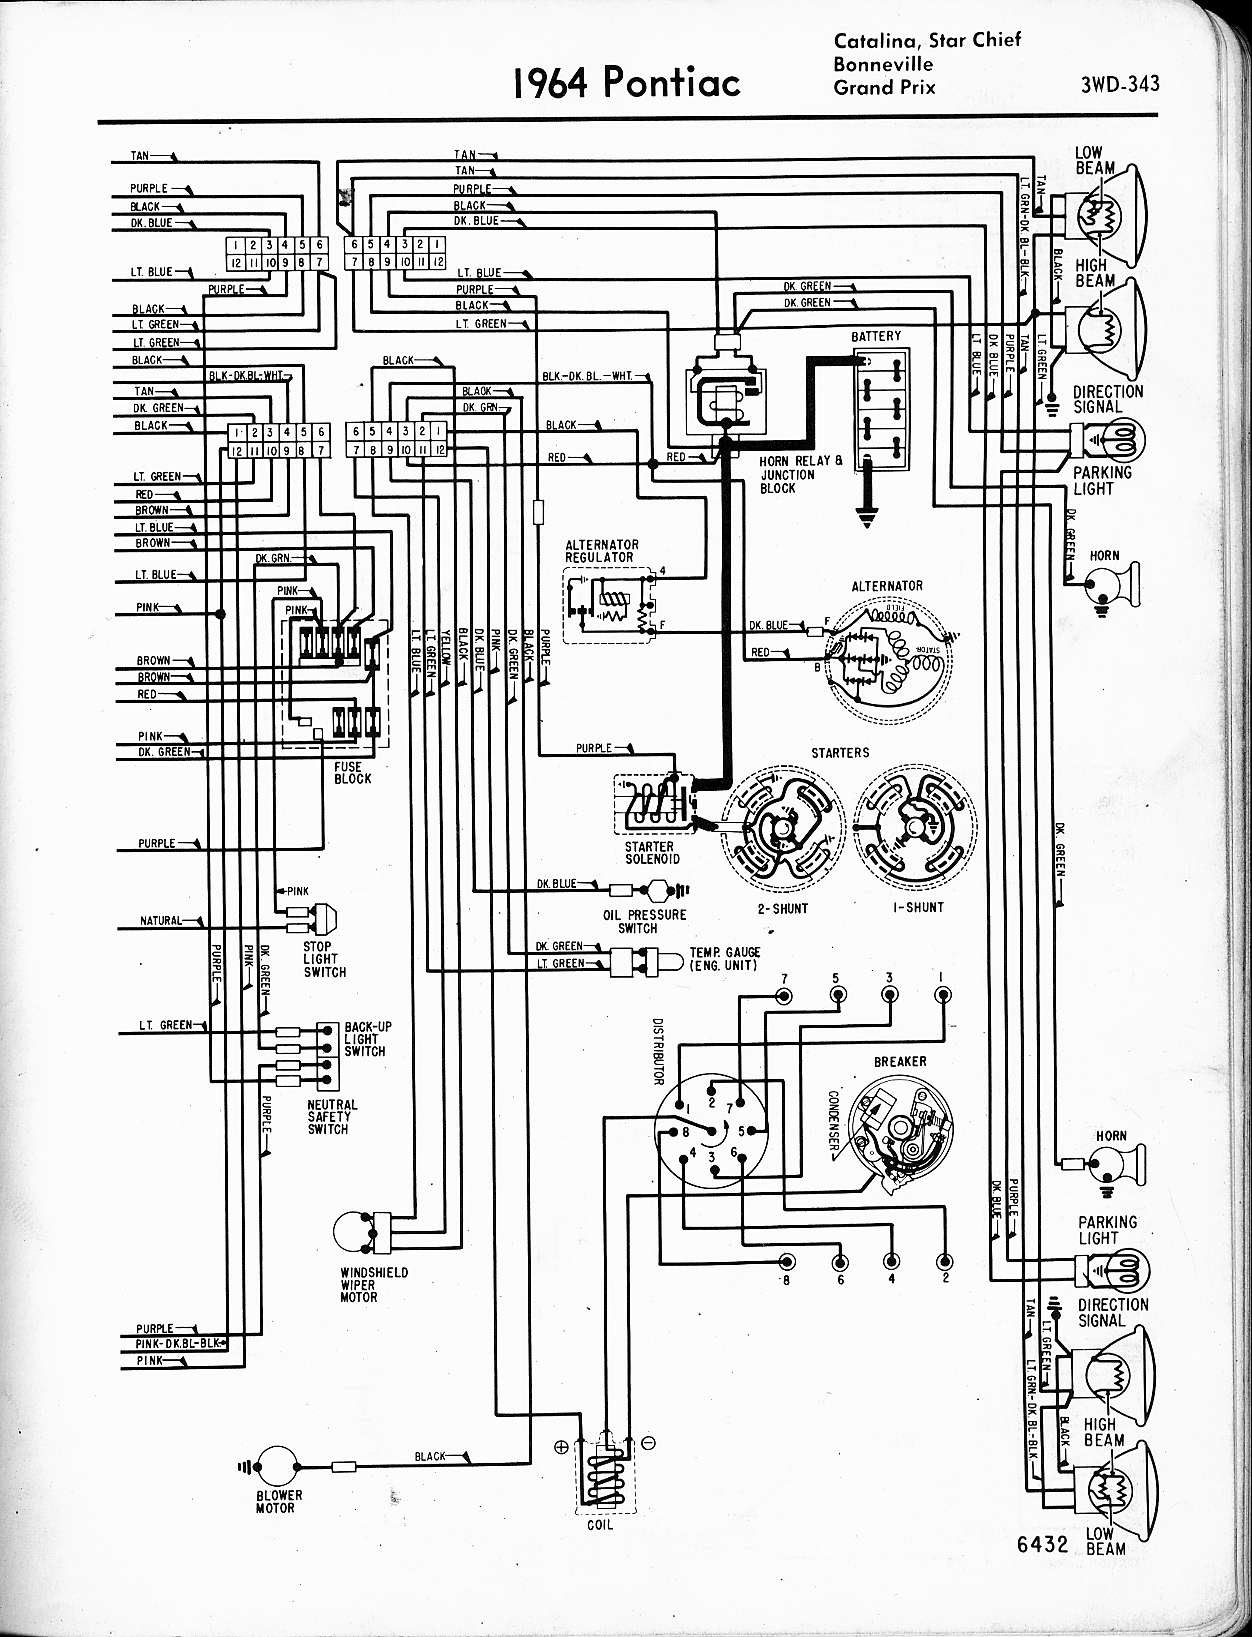 DIAGRAM] 67 Gto Rally Gauge Wiring Diagram FULL Version HD Quality Wiring  Diagram - DIAGRAMPAL.CONSERVATOIRE-CHANTERIE.FRdiagrampal.conservatoire-chanterie.fr